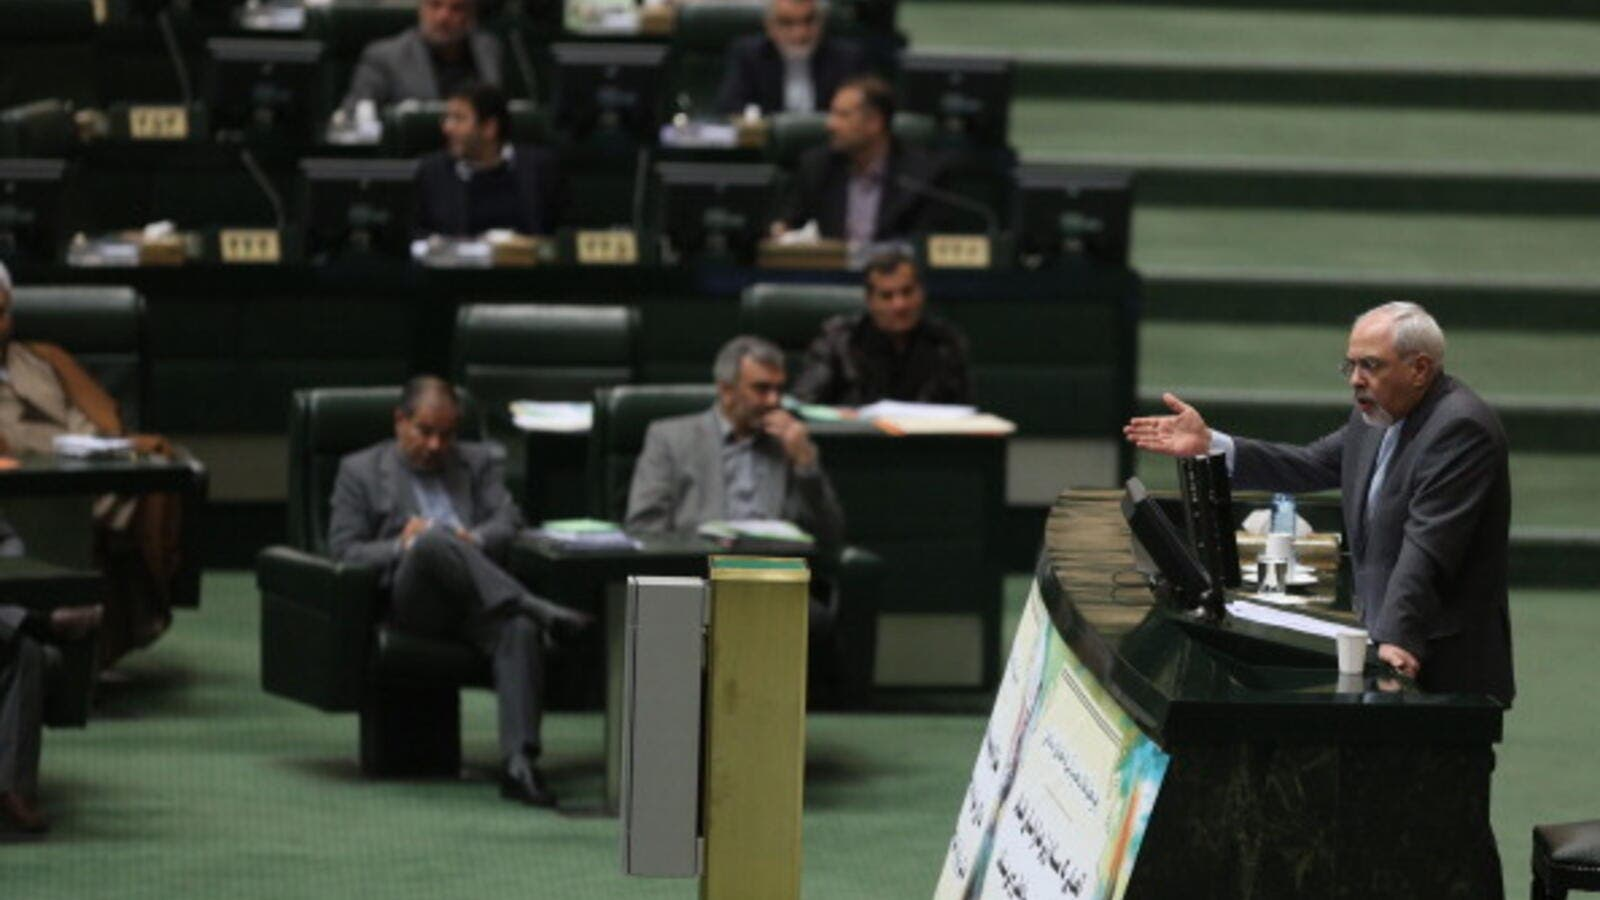 Iranian Foreign Minister Mohammad Javad Zarif addresses the parliament in Tehran on November 27, 2013. [Getty Images]